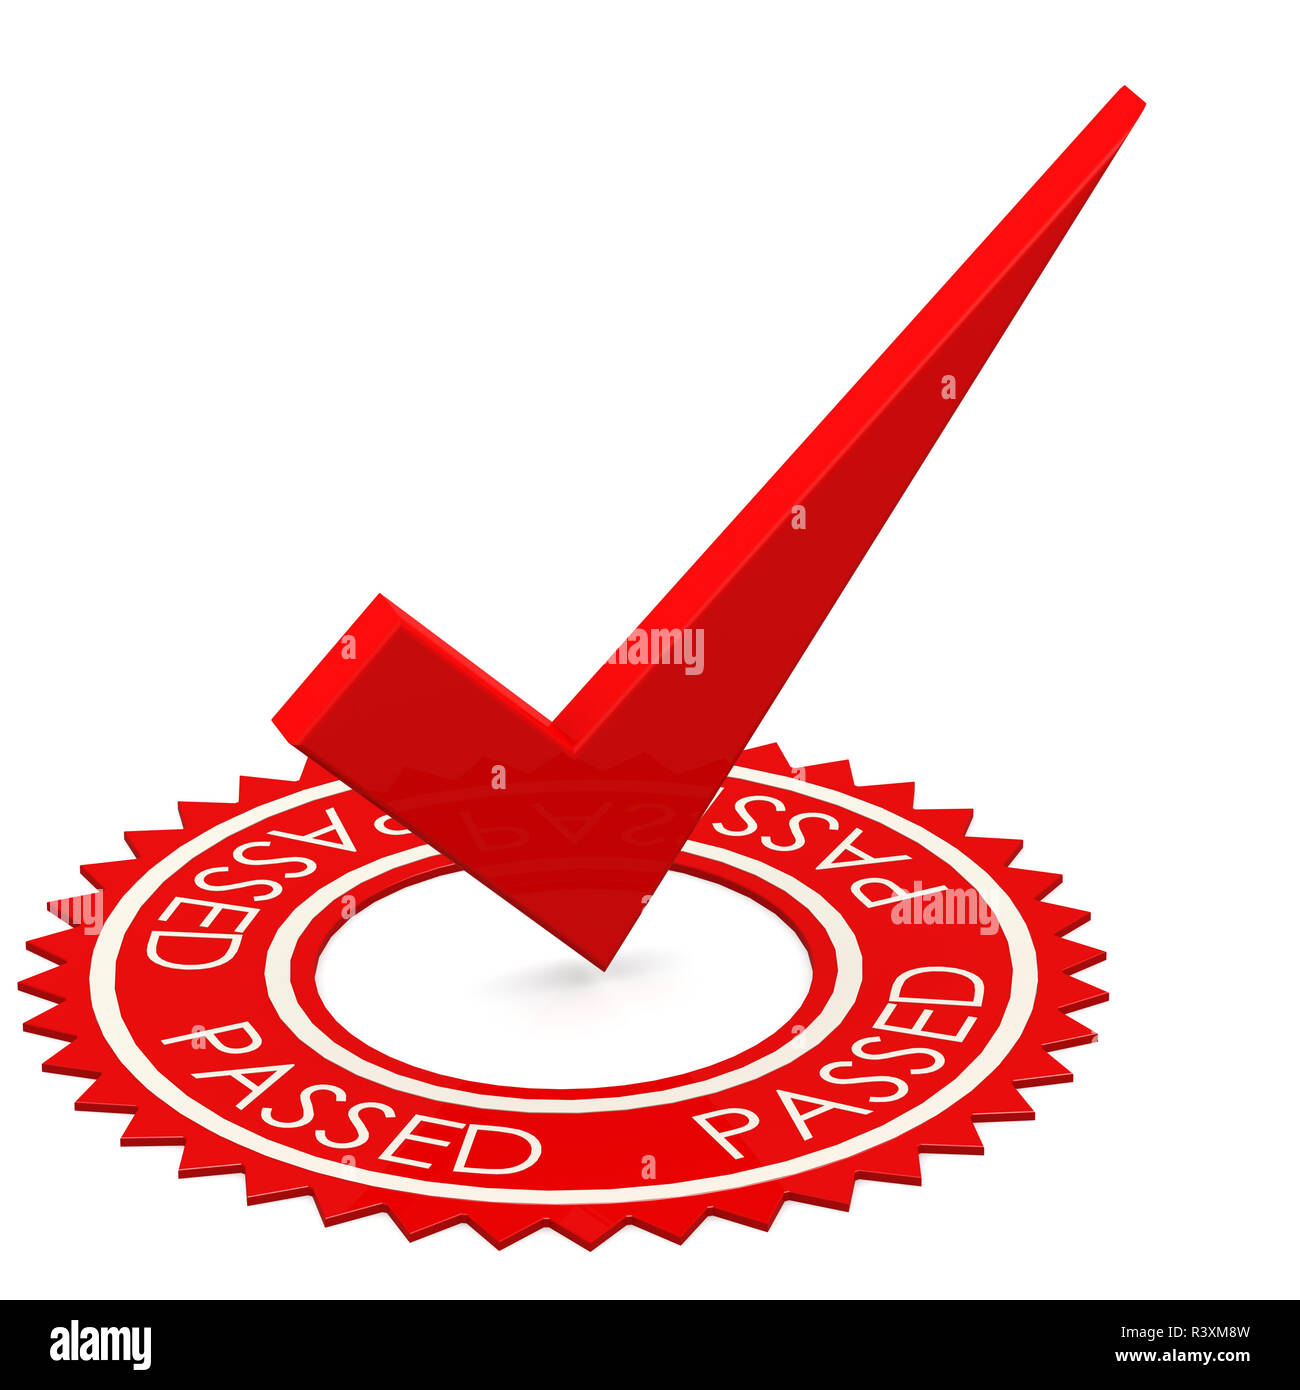 Passed word with red tick in middle - Stock Image